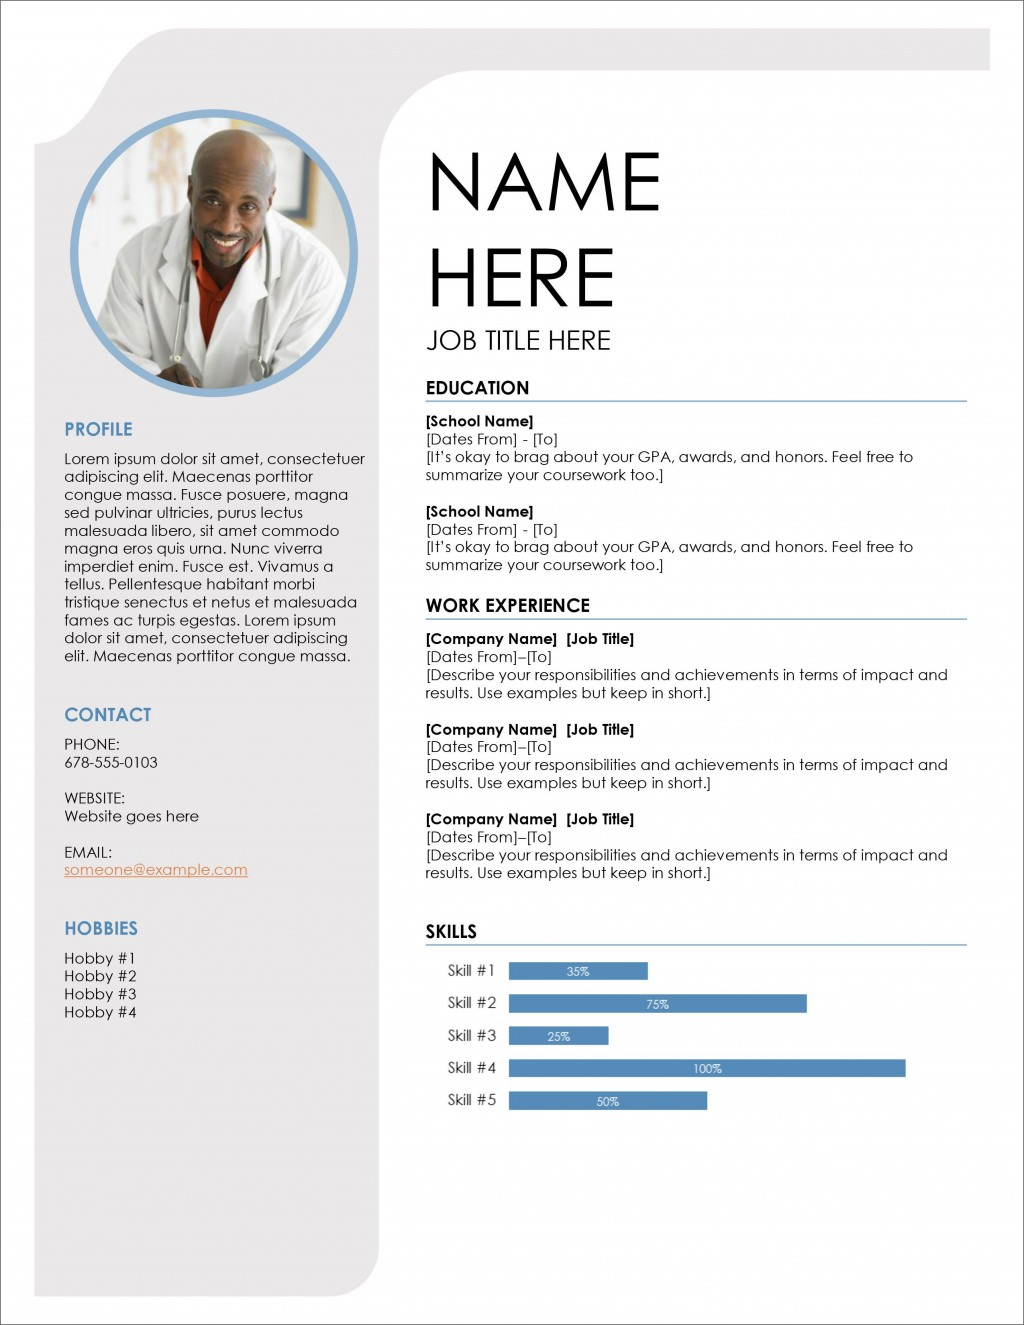 006 Stunning Download Template For Word Concept  Wordpres Free Resume 2007 Addres LabelLarge